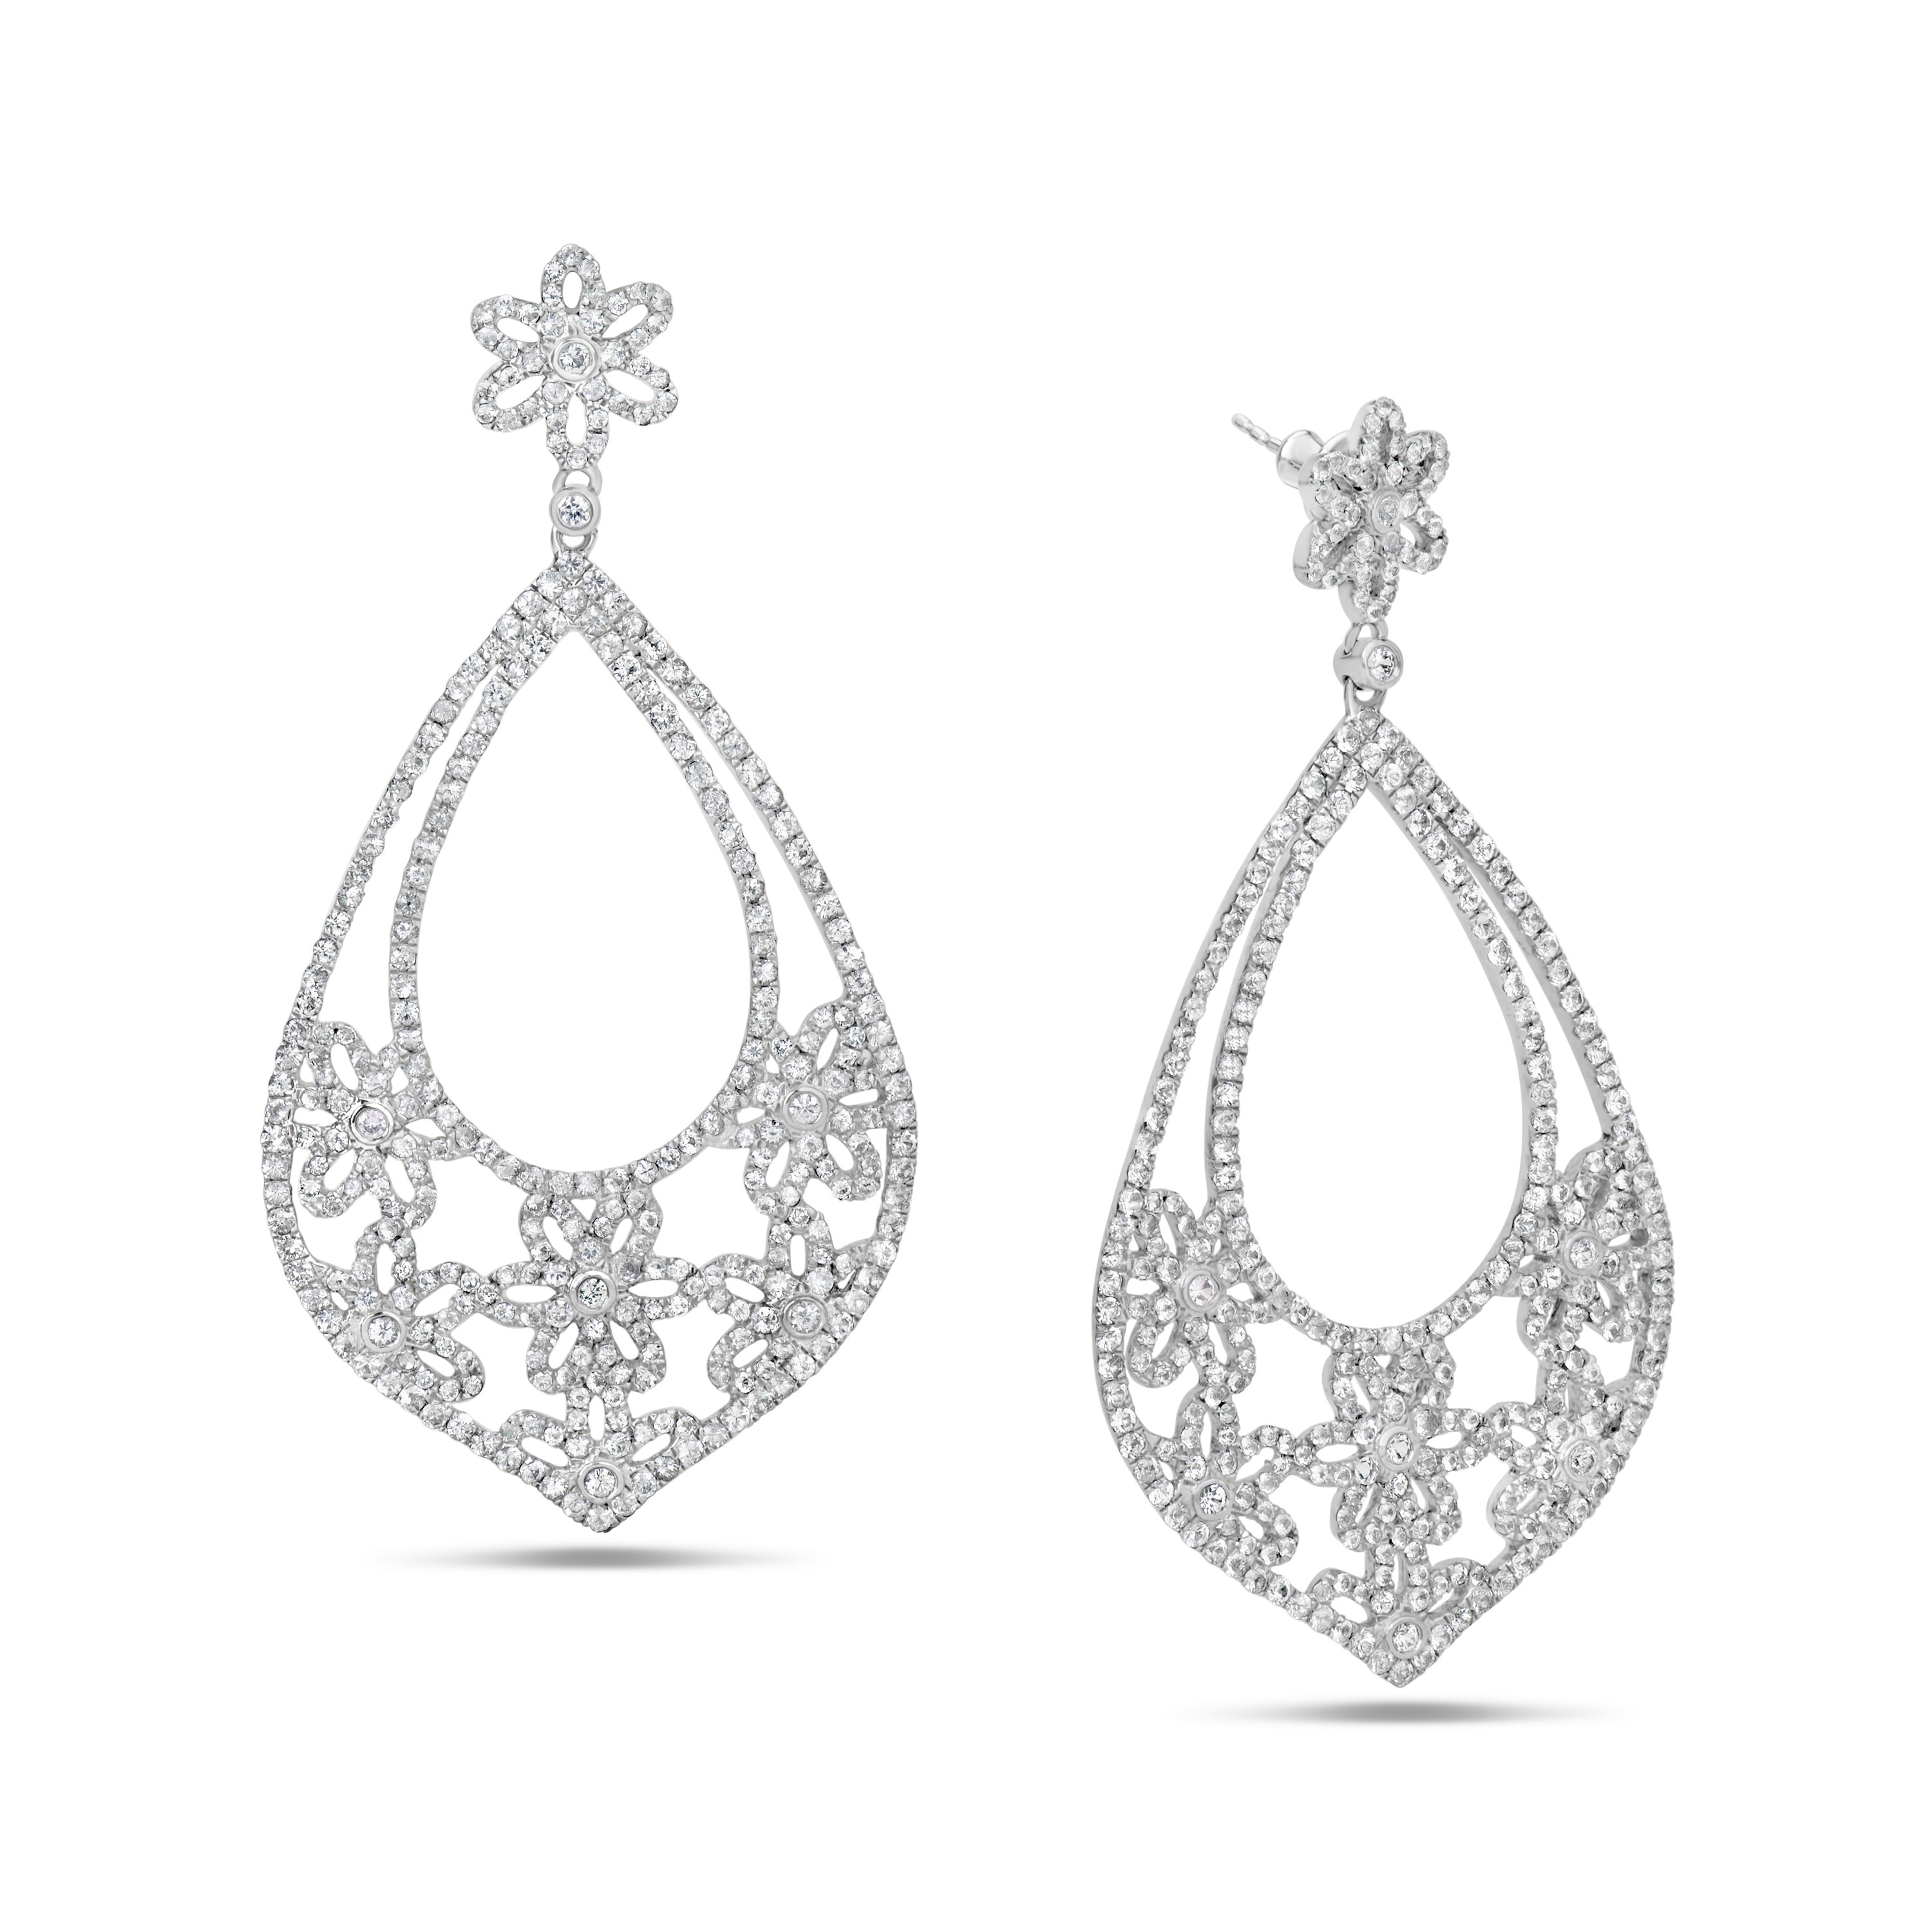 White Sapphire Floral Earrings